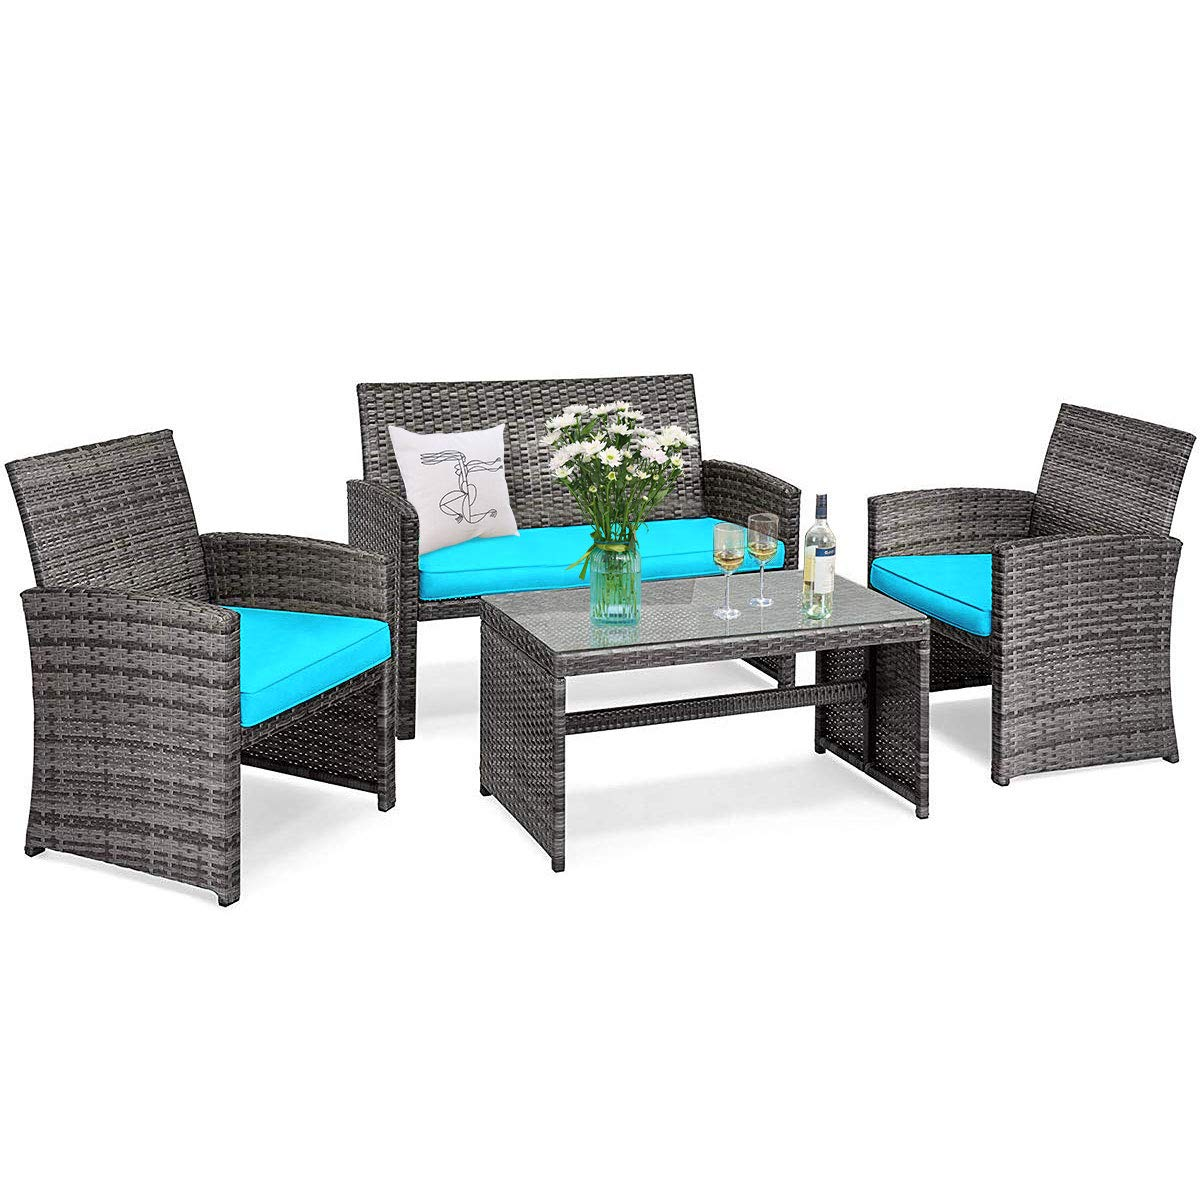 Goplus Rattan Furniture Set, 4 Pieces Outdoor Wicker Conversation Sofa Set with Cushions and Table for Garden Yard Patio B...